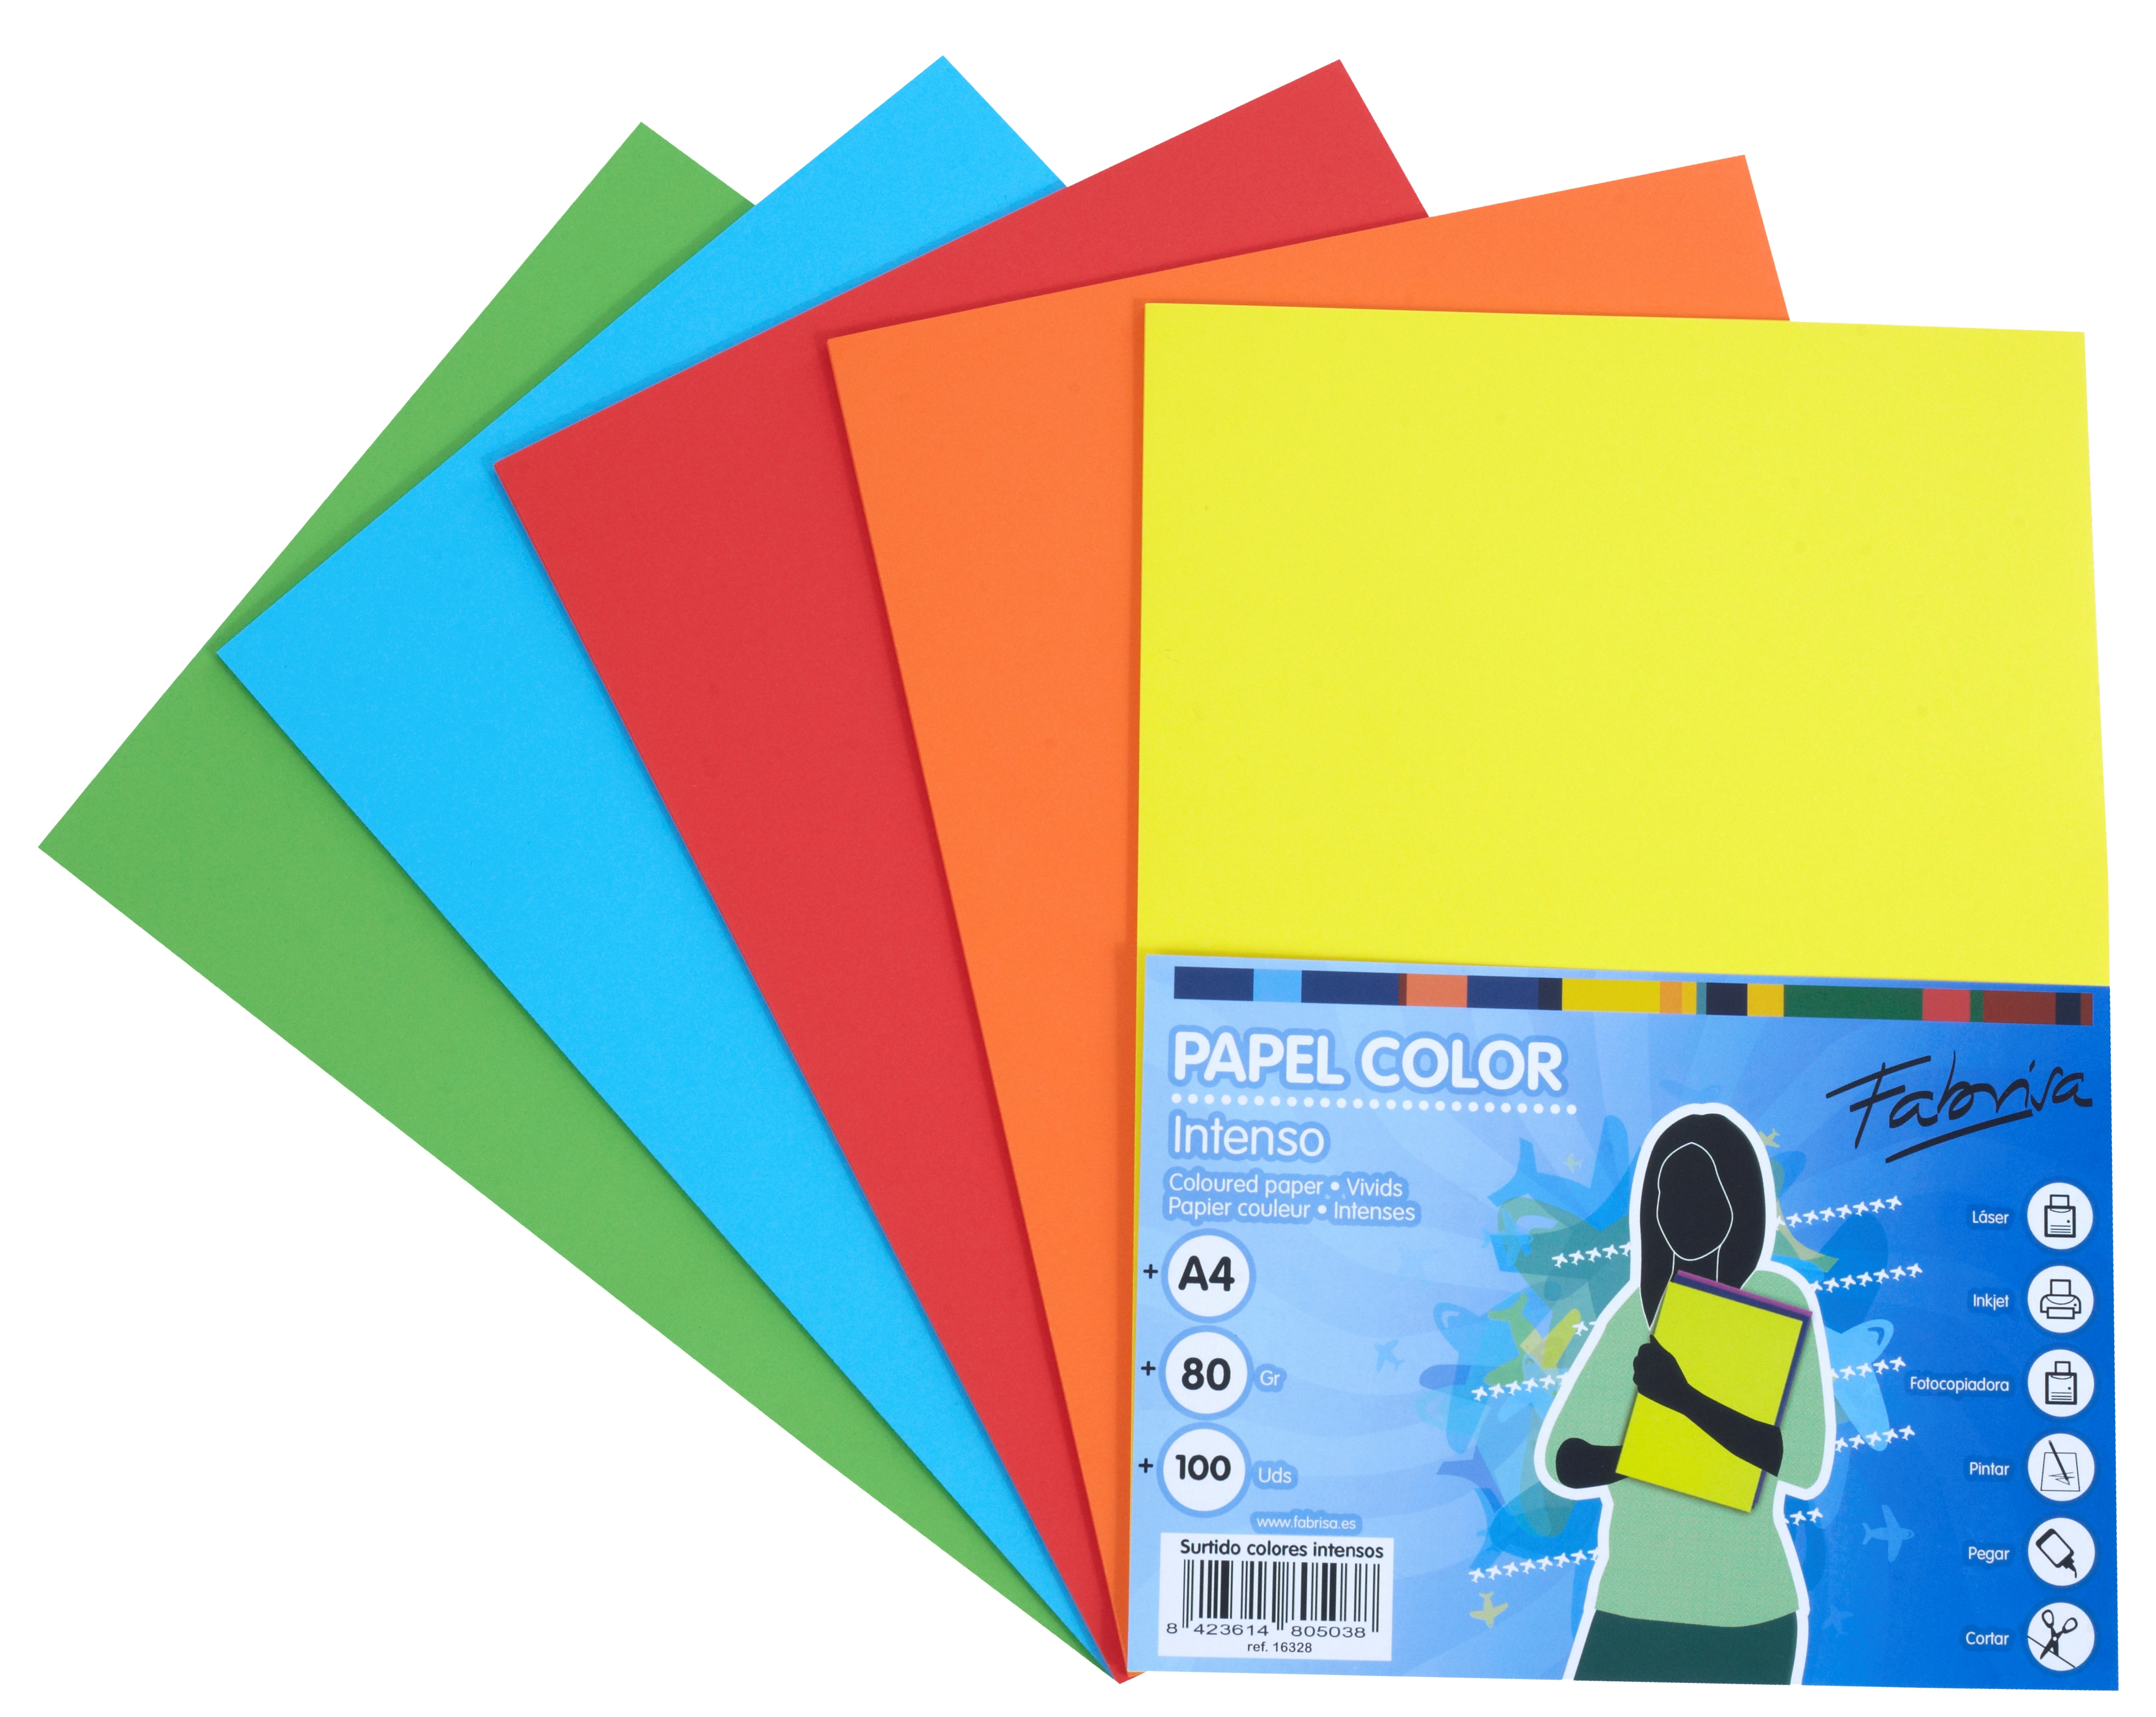 Papel color FABRISA  A4 80g Surtido intensos Pack 100h